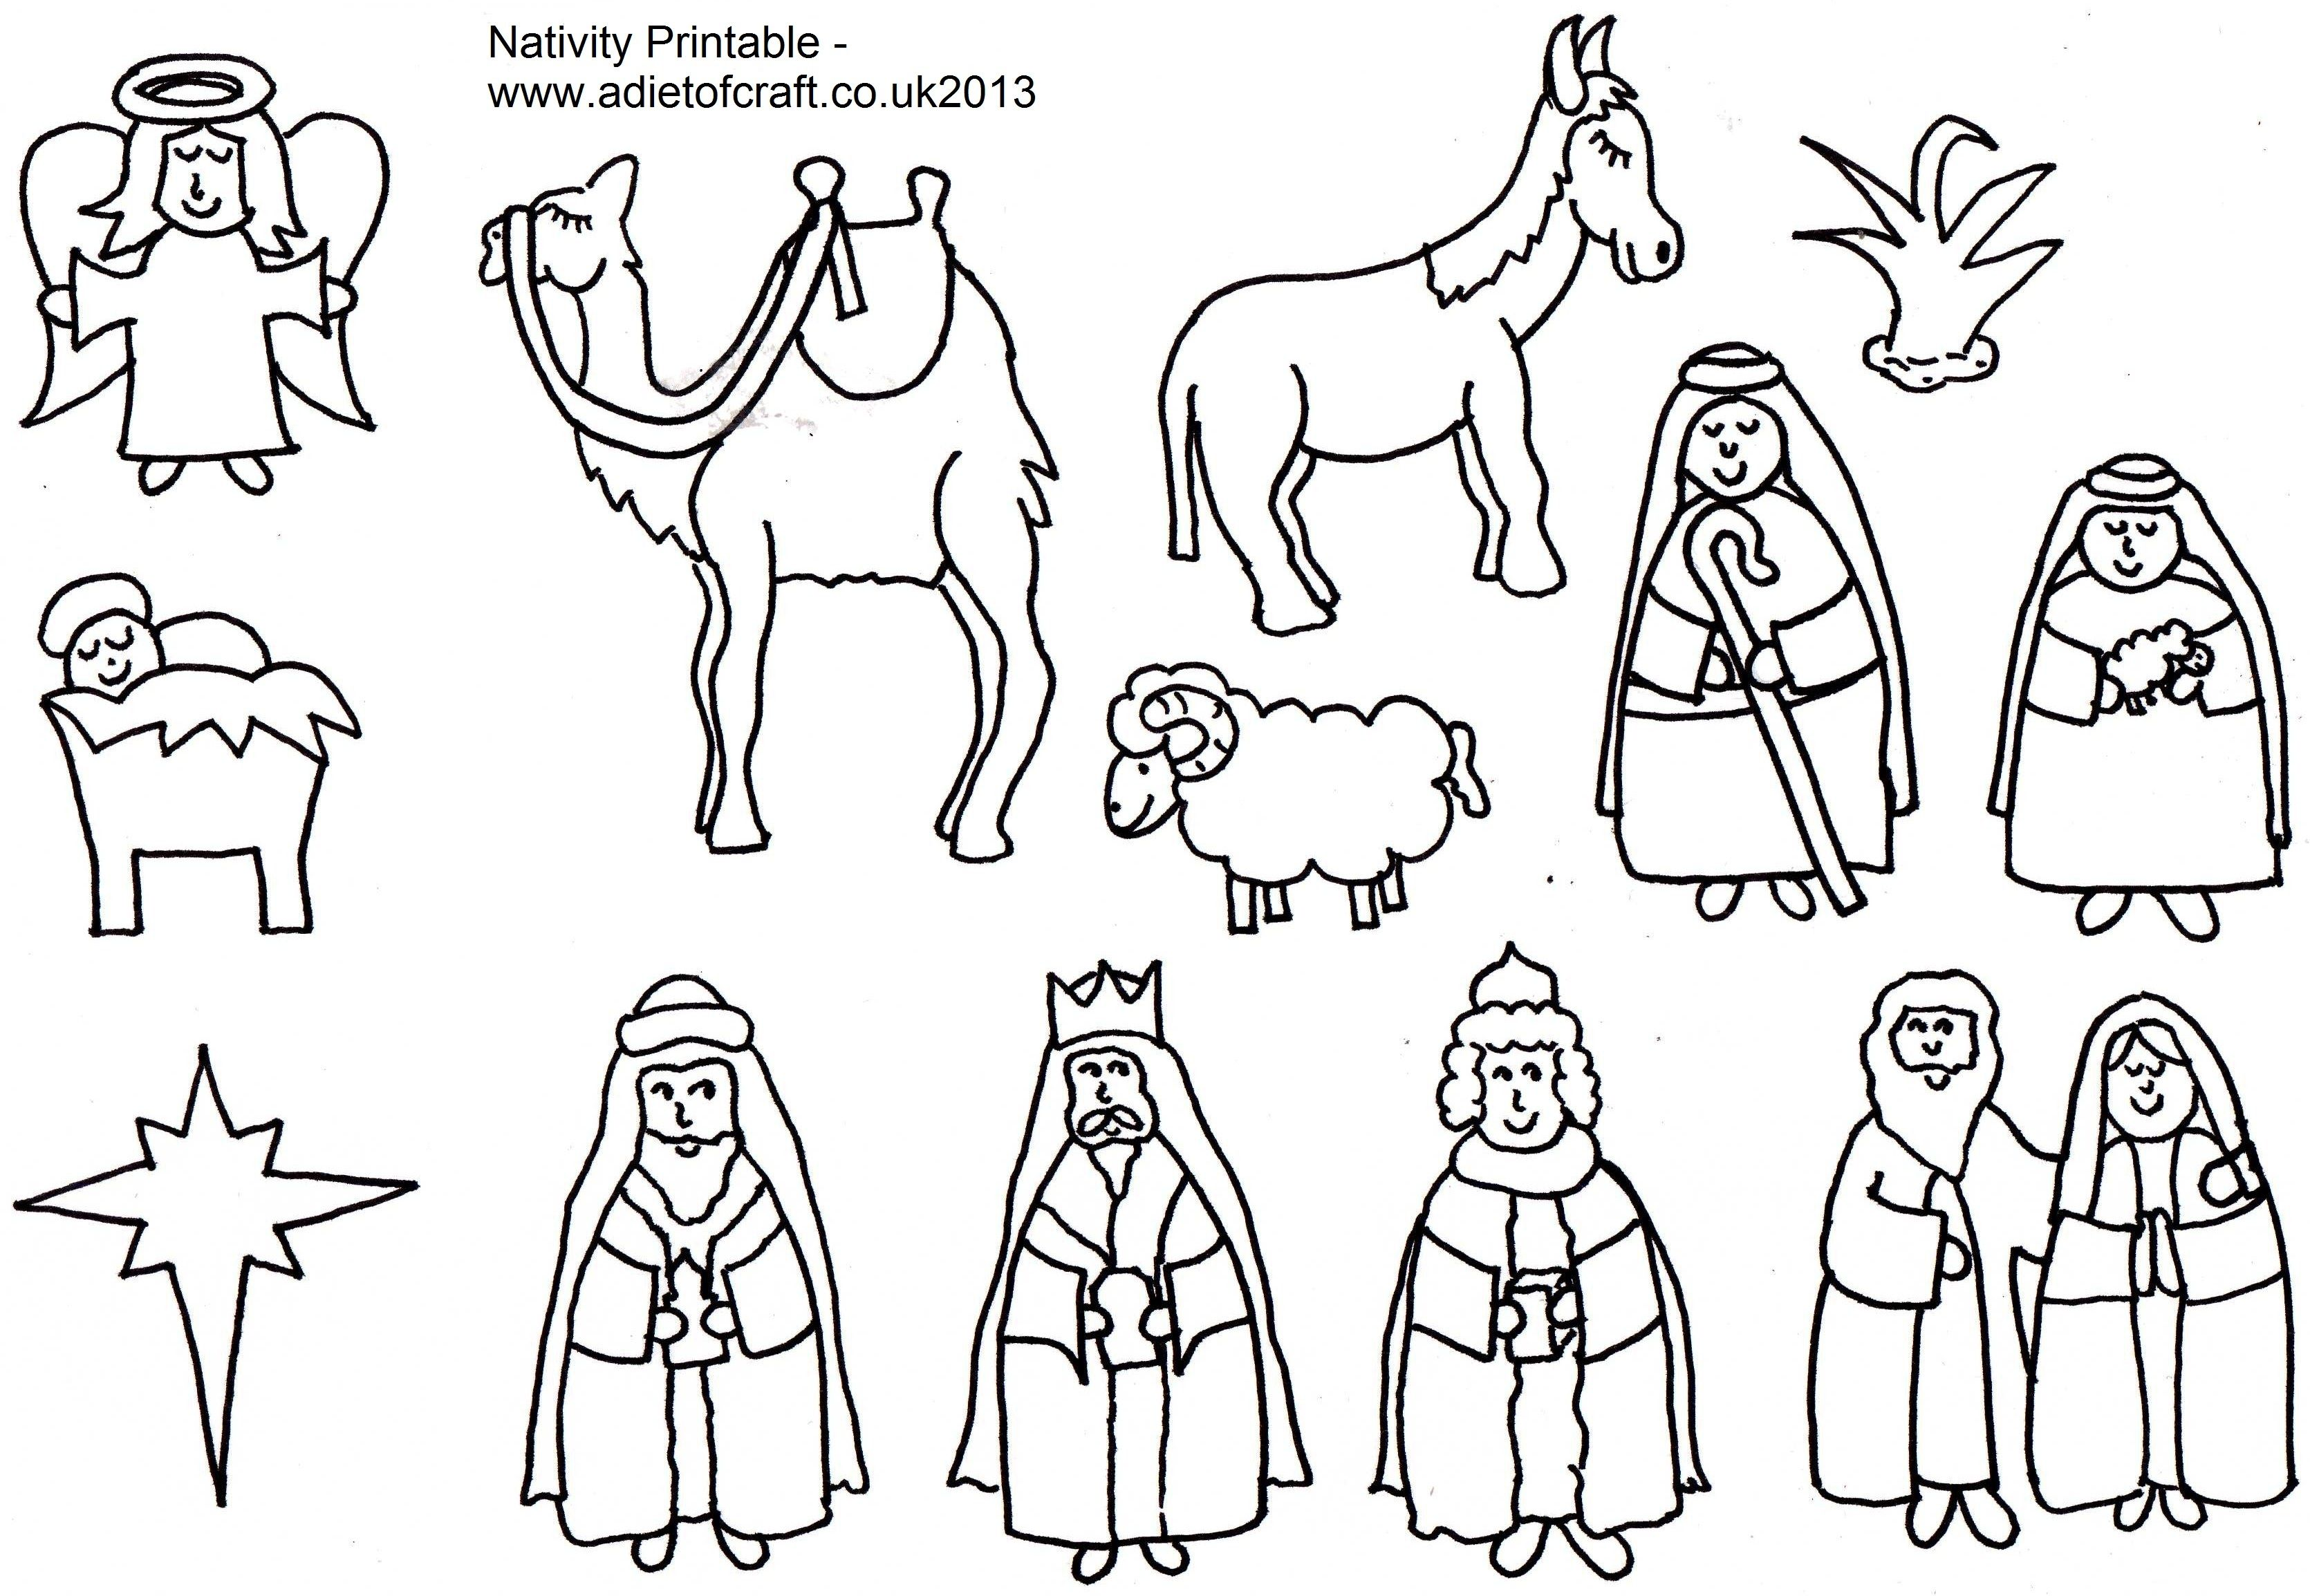 Nativity Scene Coloring Pages Printables Nativity Story Printable Nativity Coloring Christmas Coloring Printables